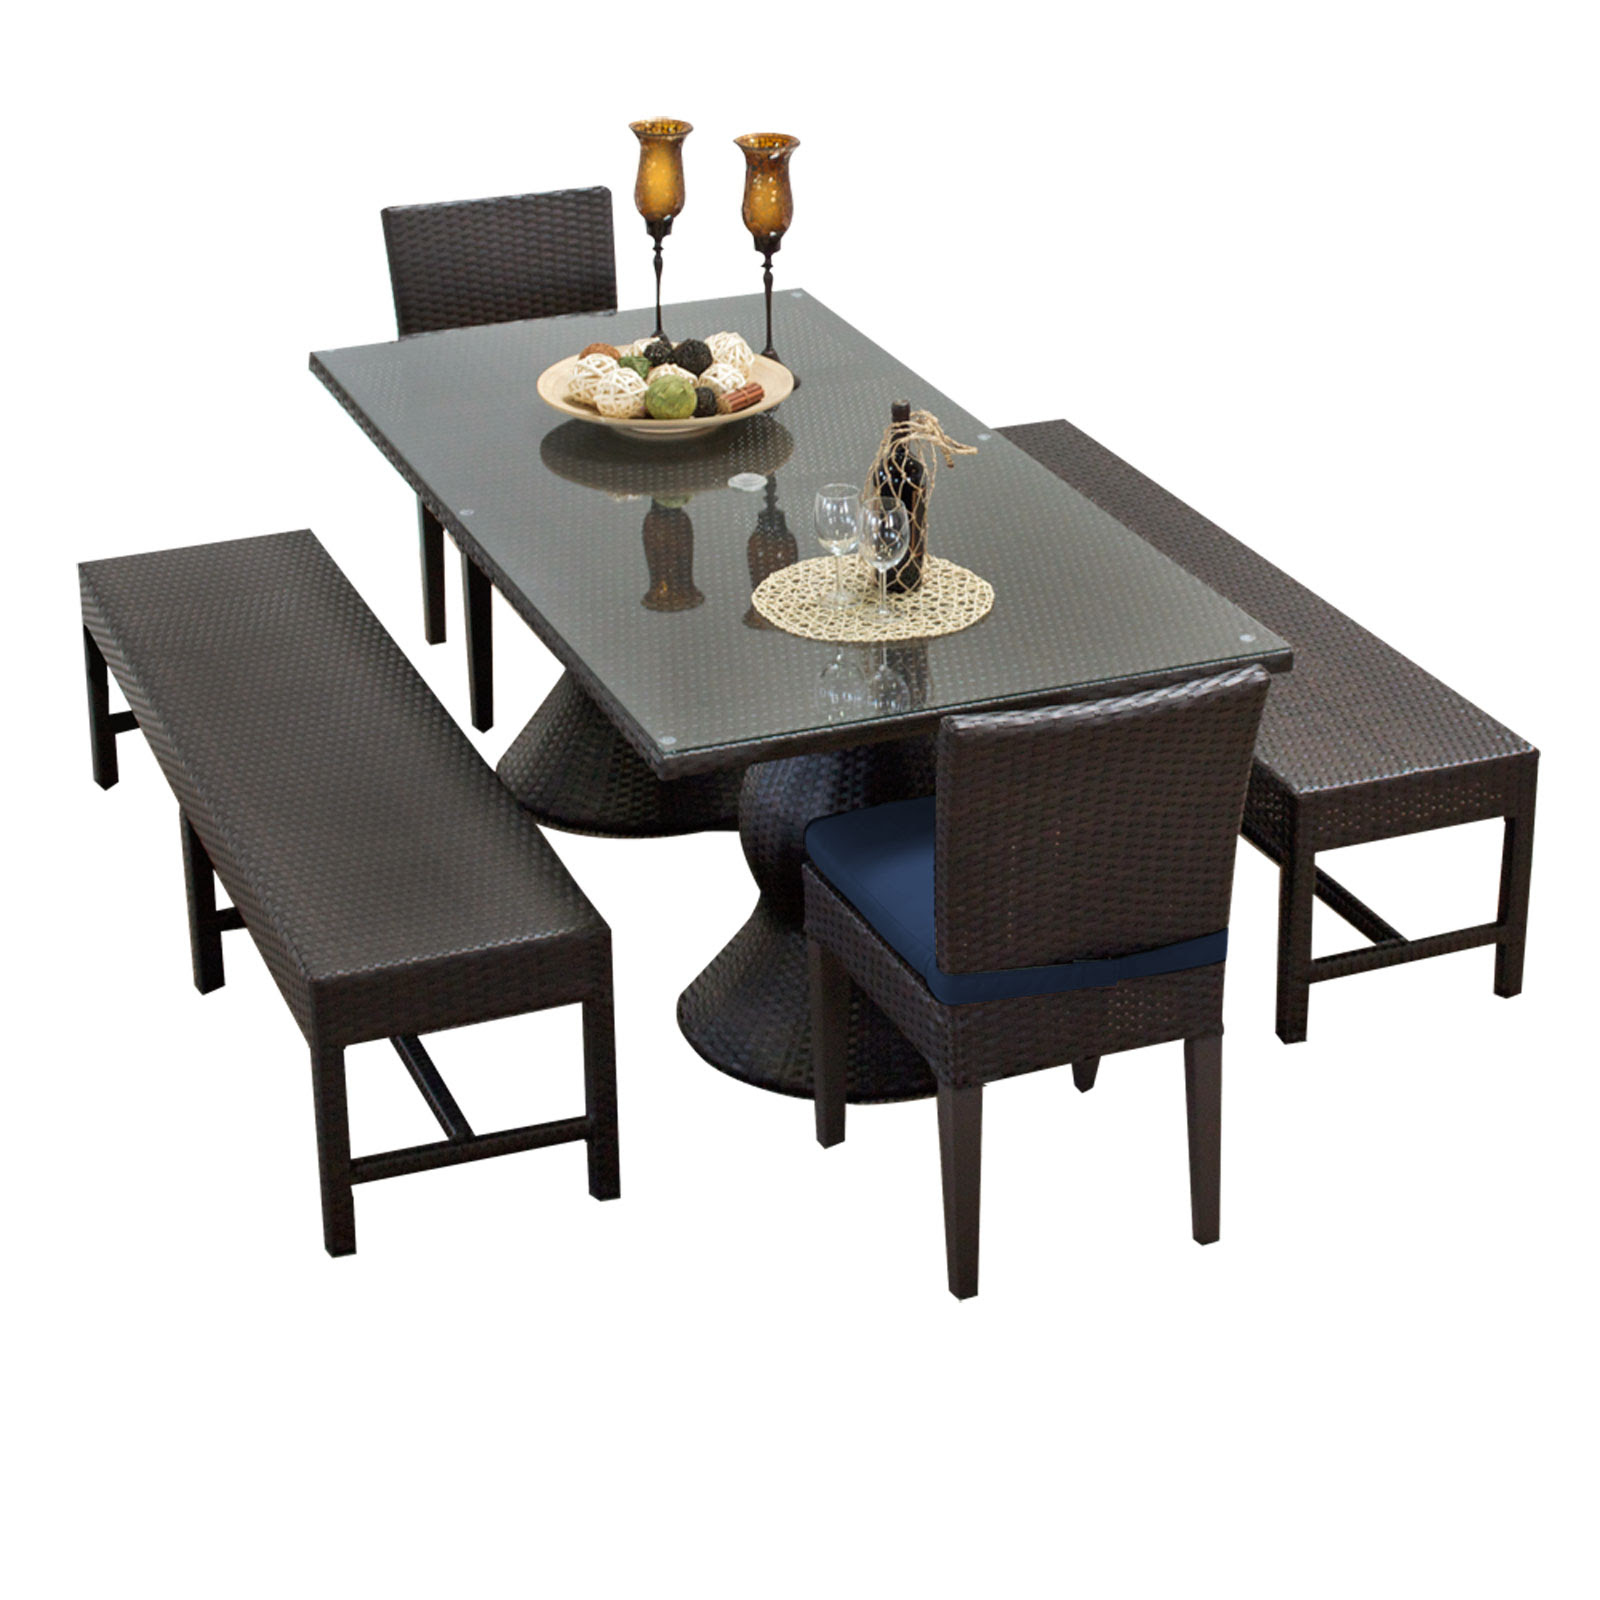 TK Classics :: Napa Rectangular Outdoor Patio Dining Table With 2 Chairs and 2 Benches